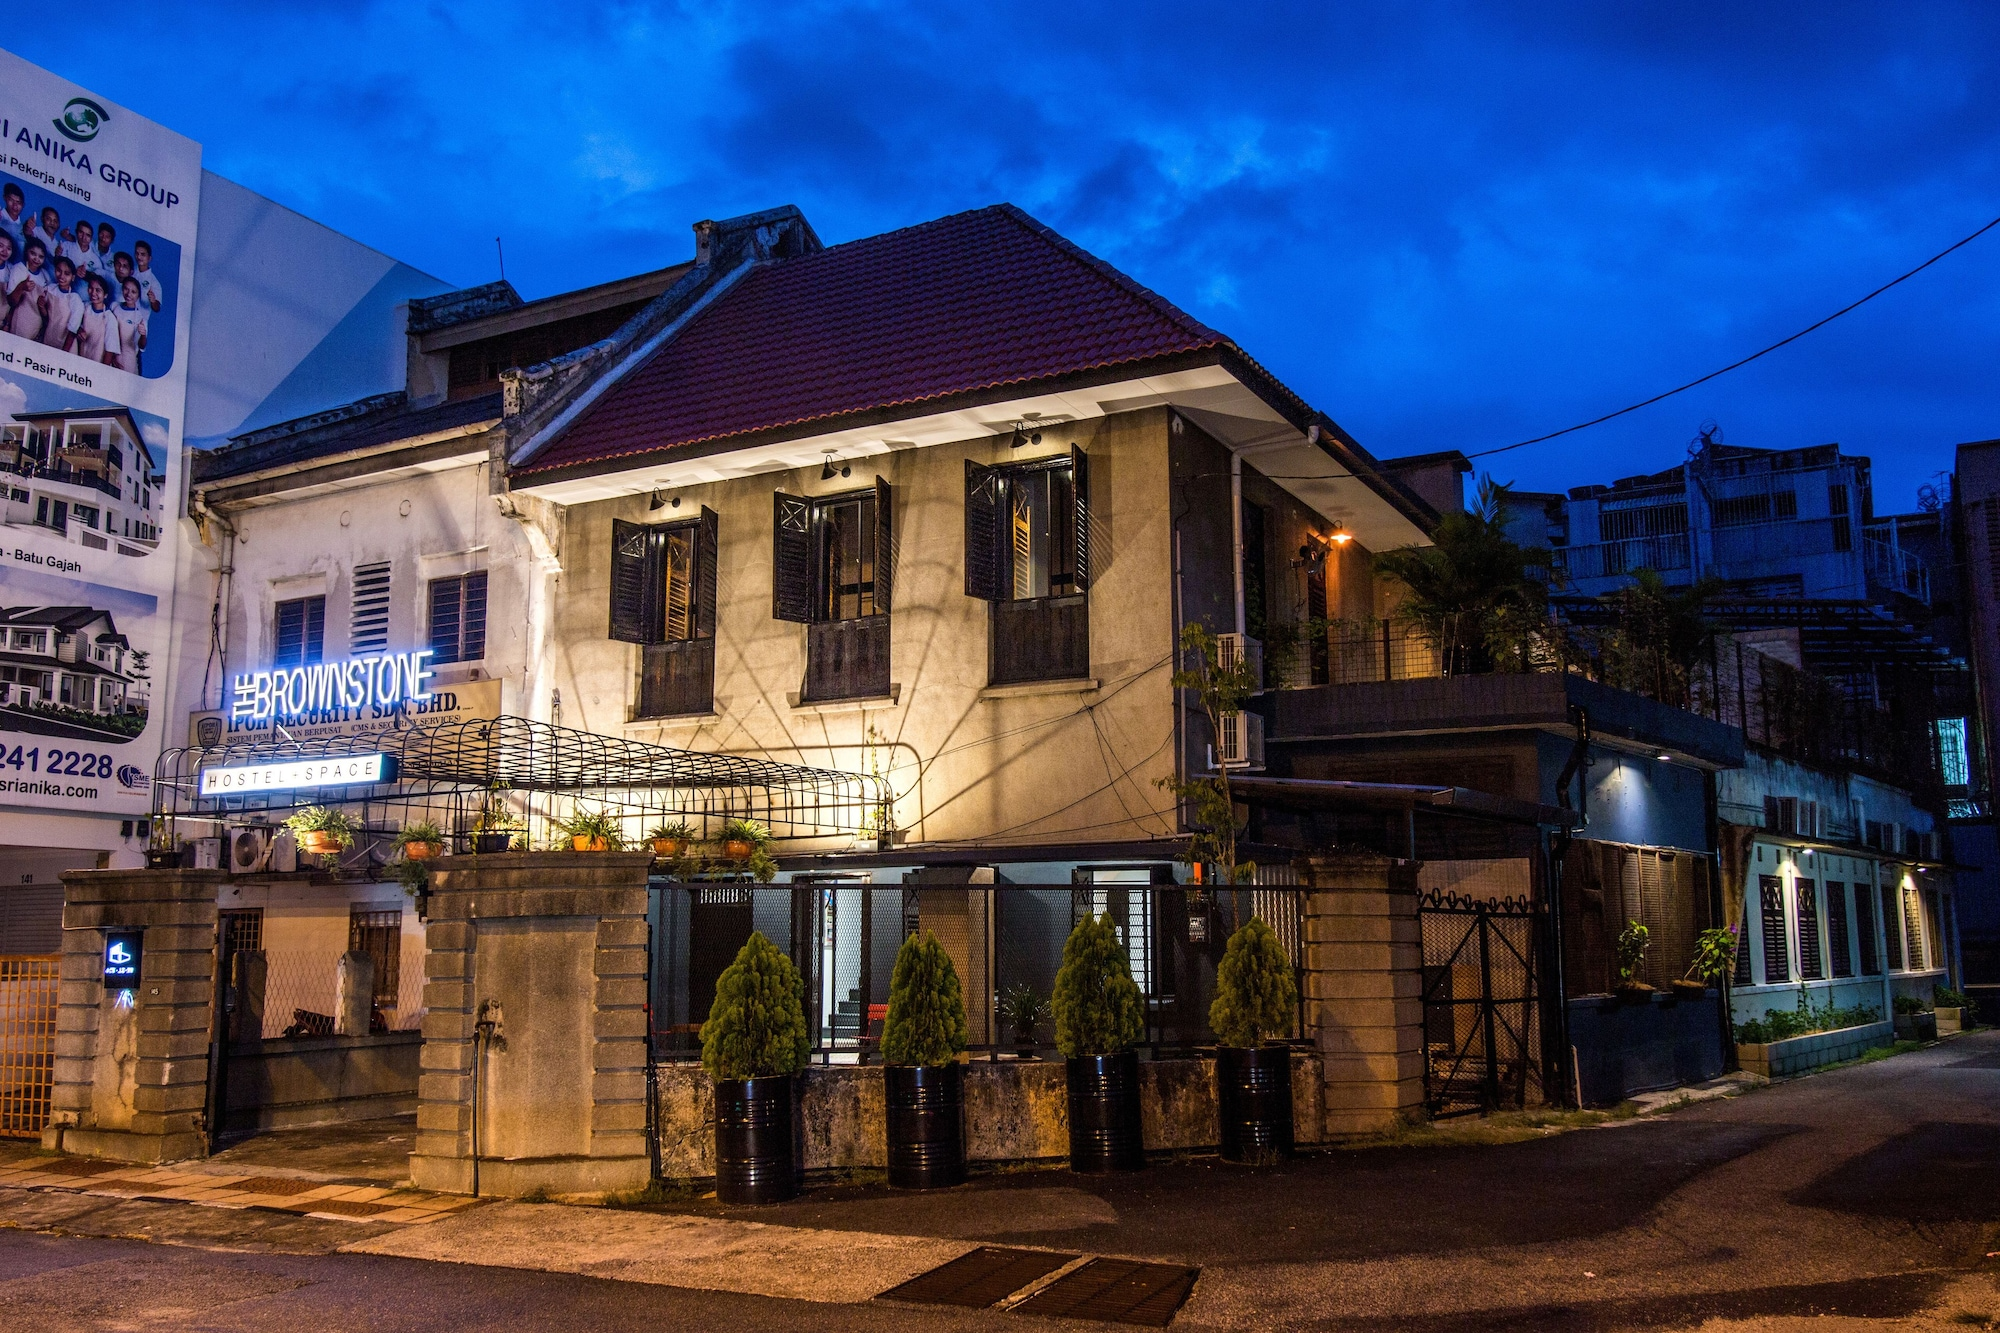 The Brownstone Hostel & Space, Kinta